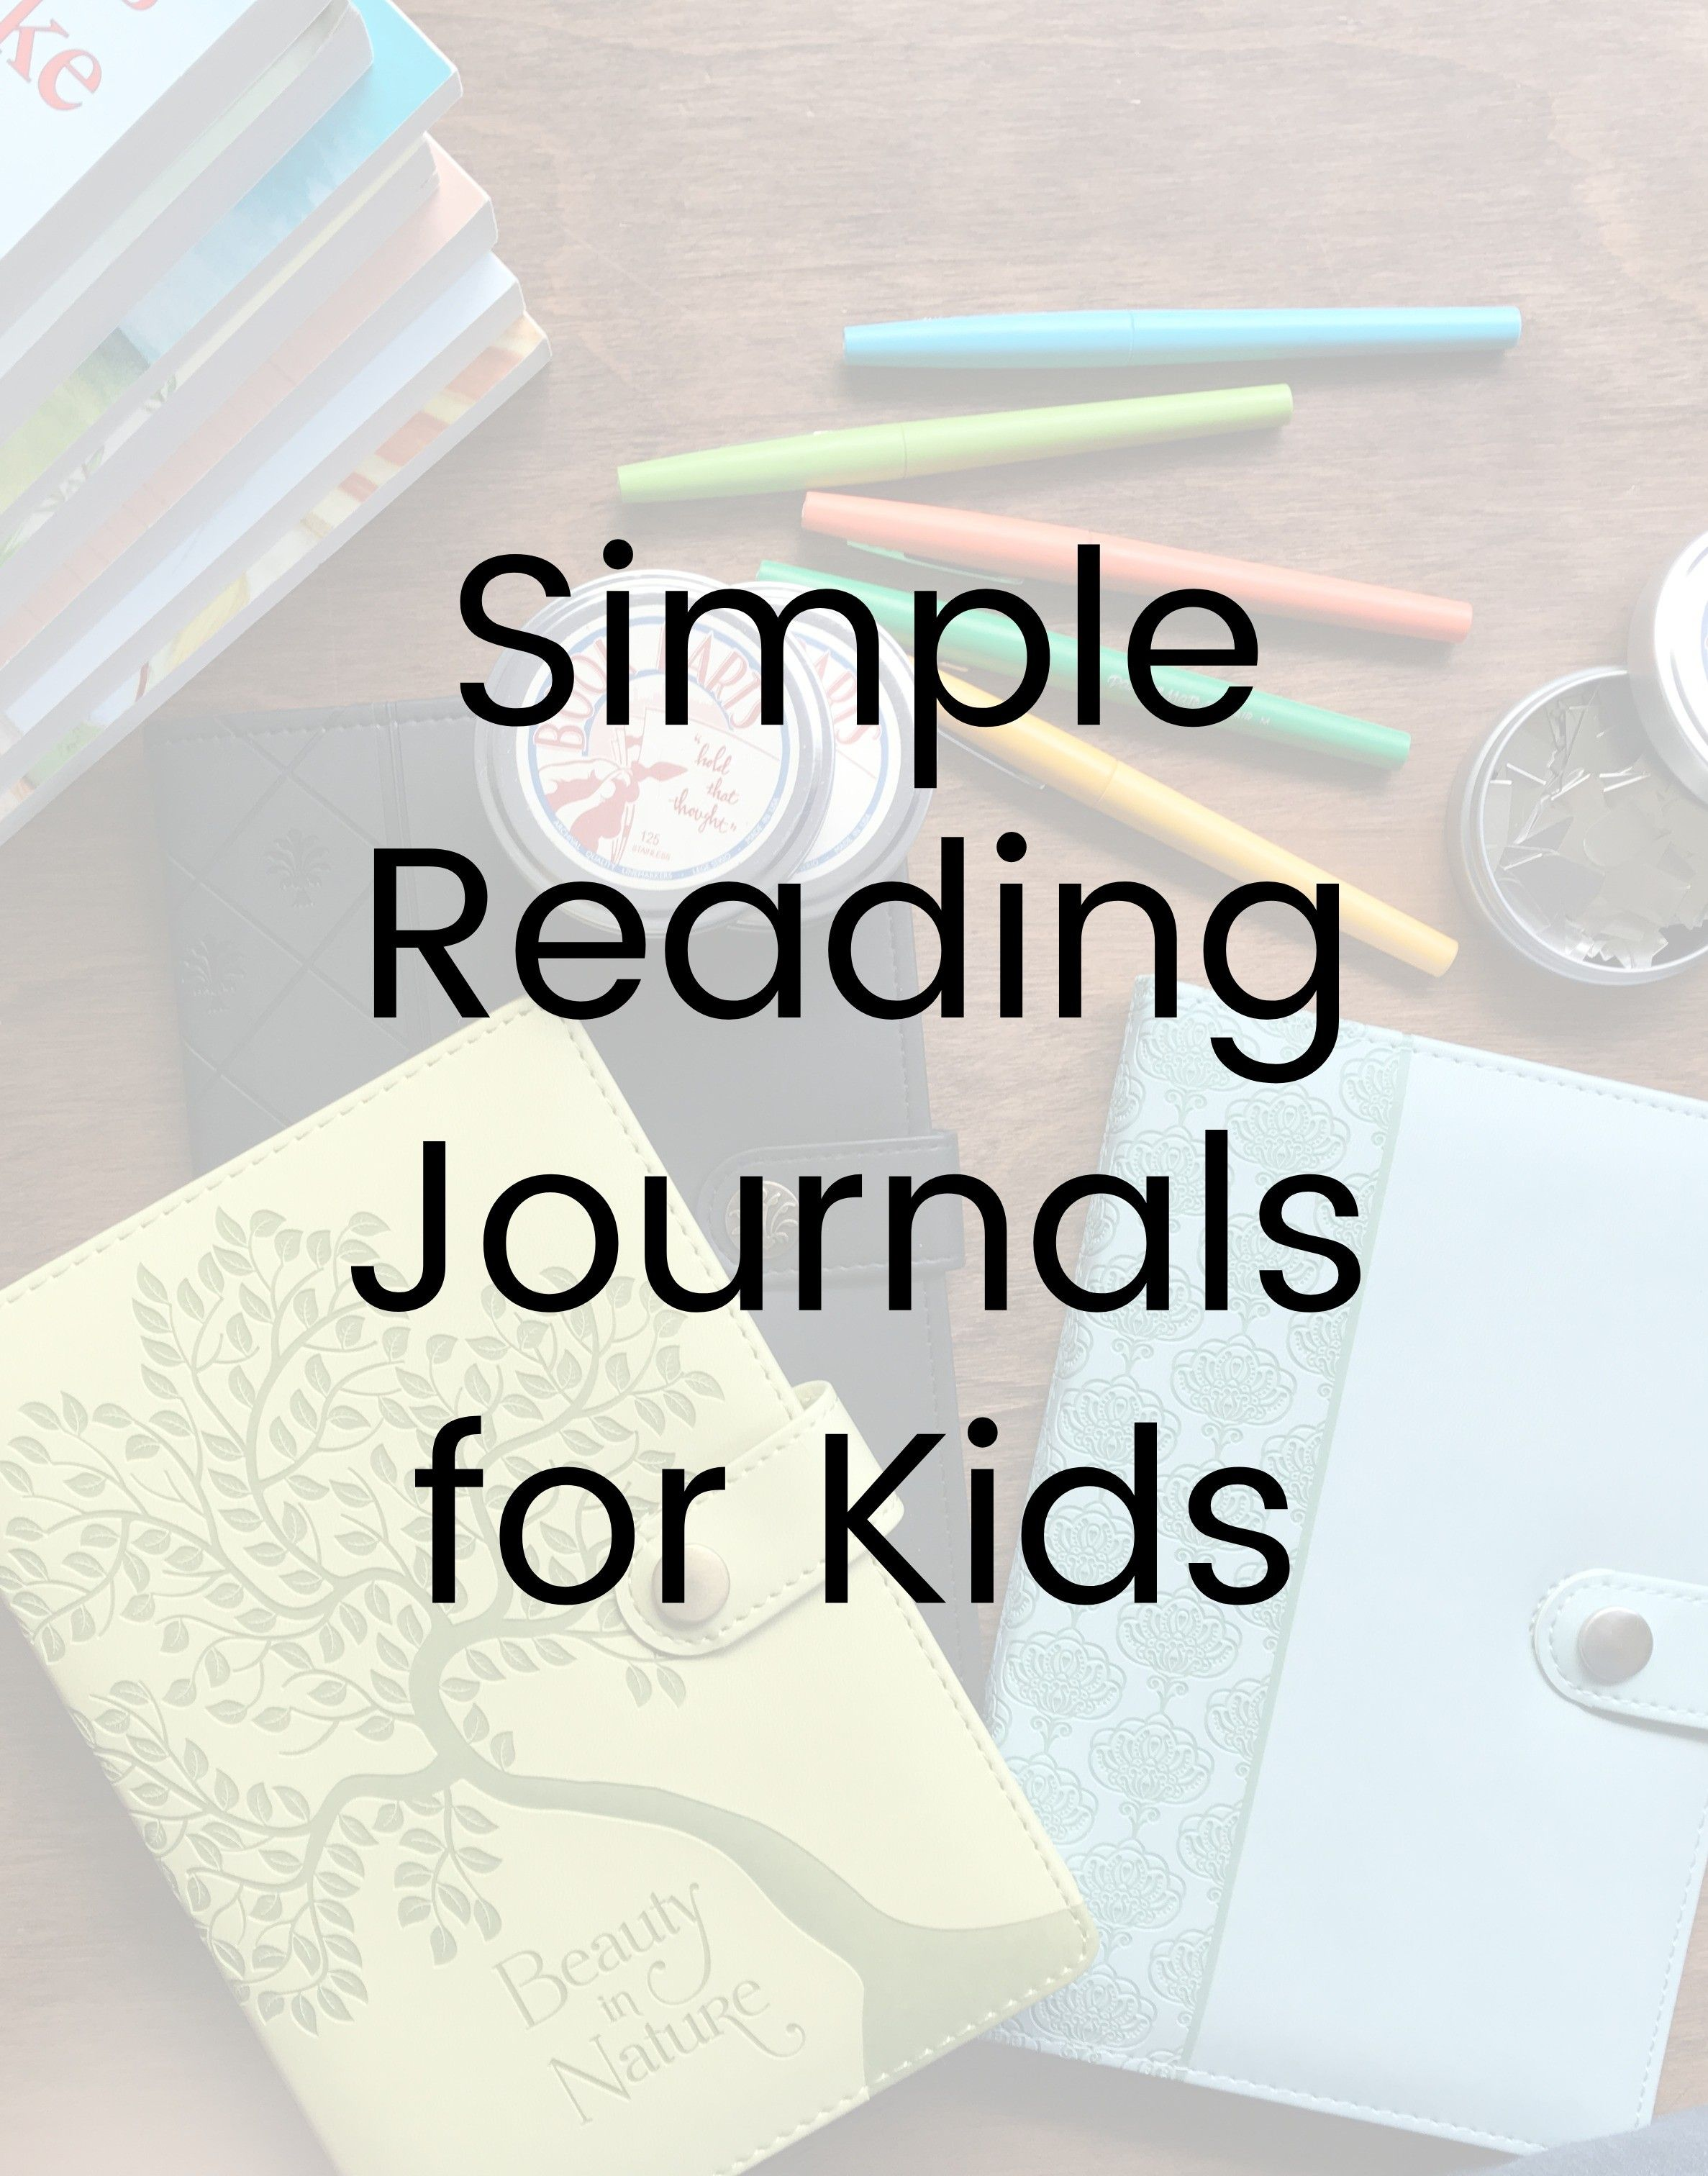 Simple Reading Journals For Kids FREE Video Class